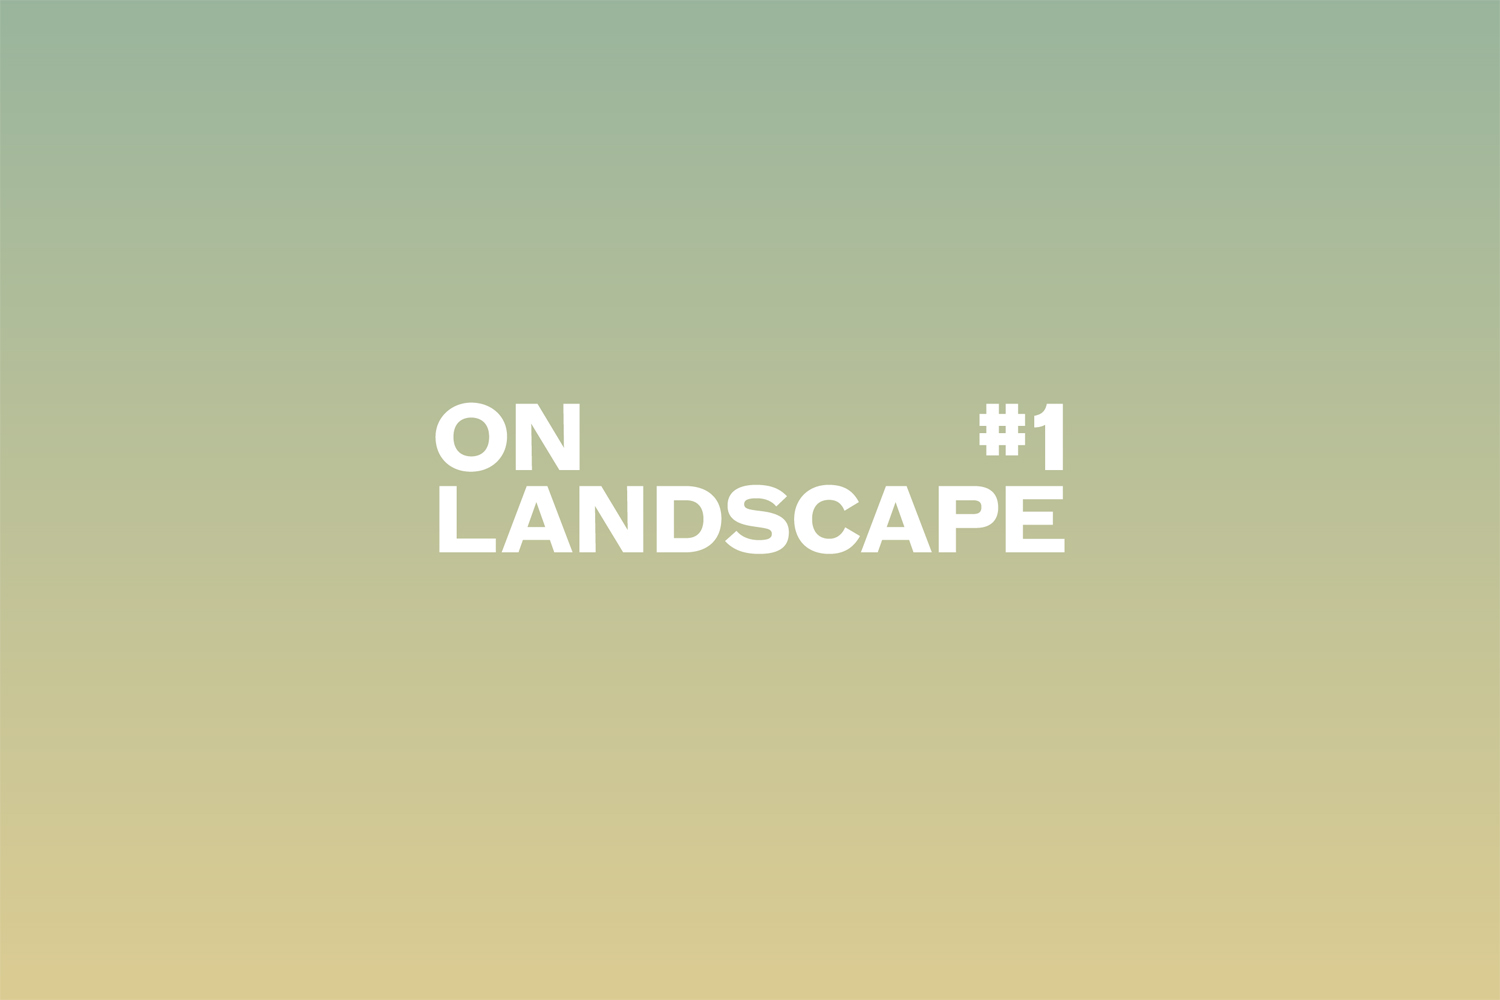 On_Landscape_Slide.jpg